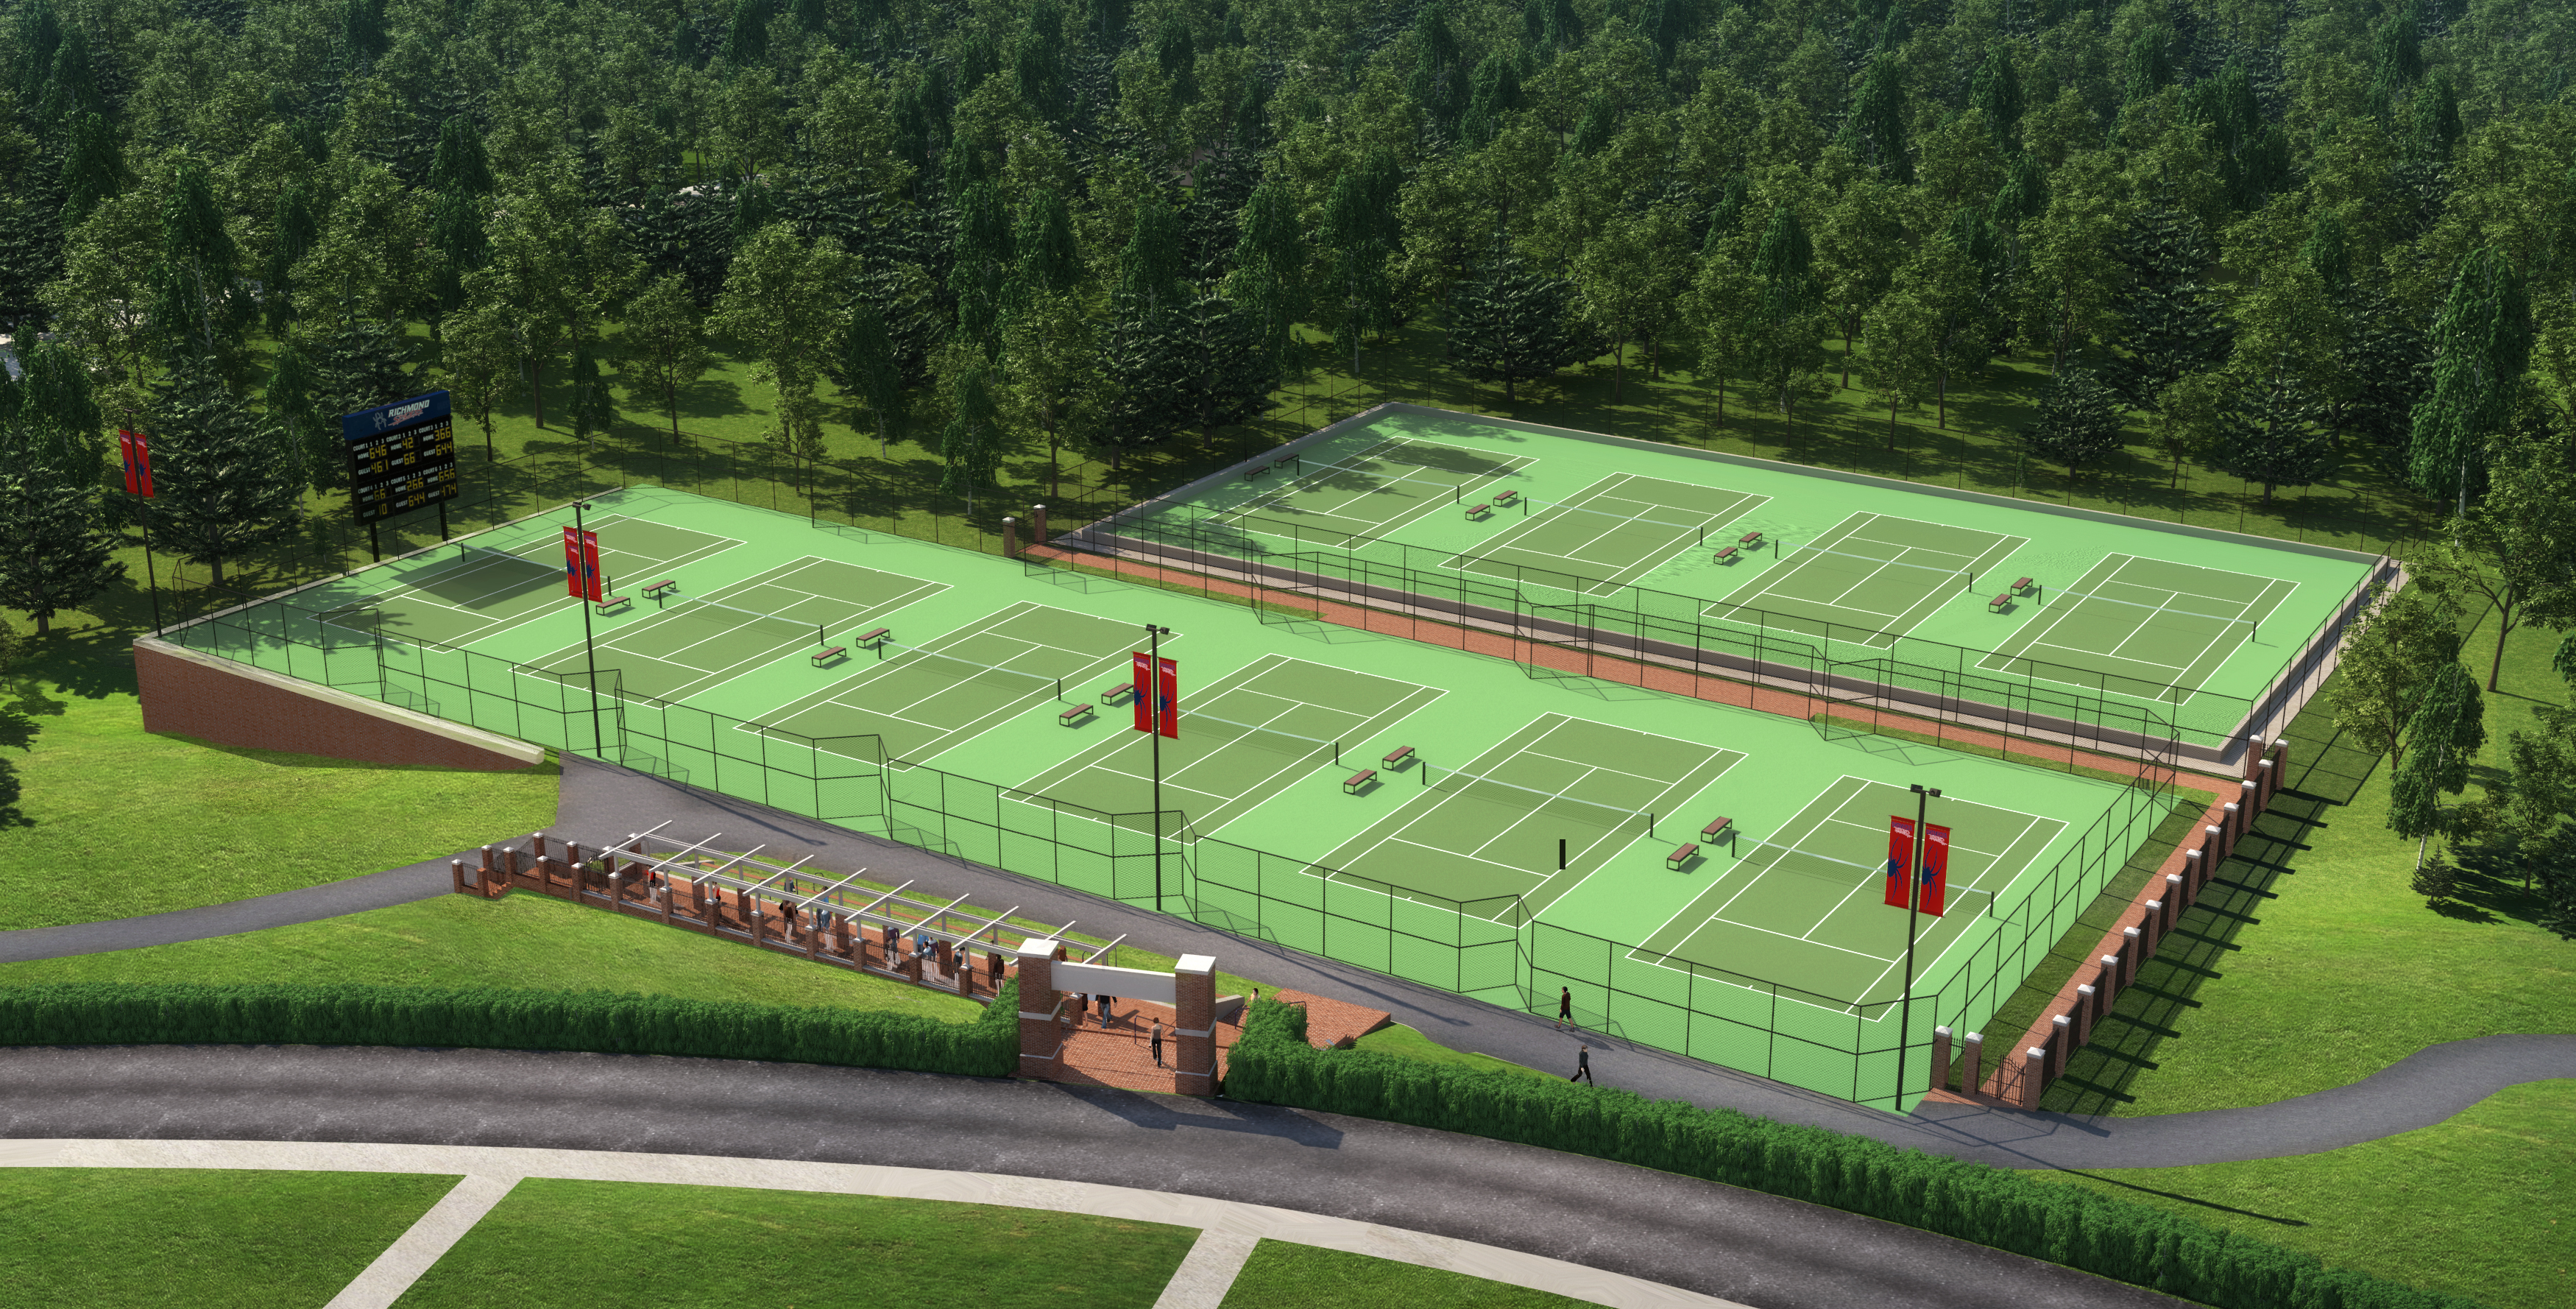 Tennis plex Currently being Renovated